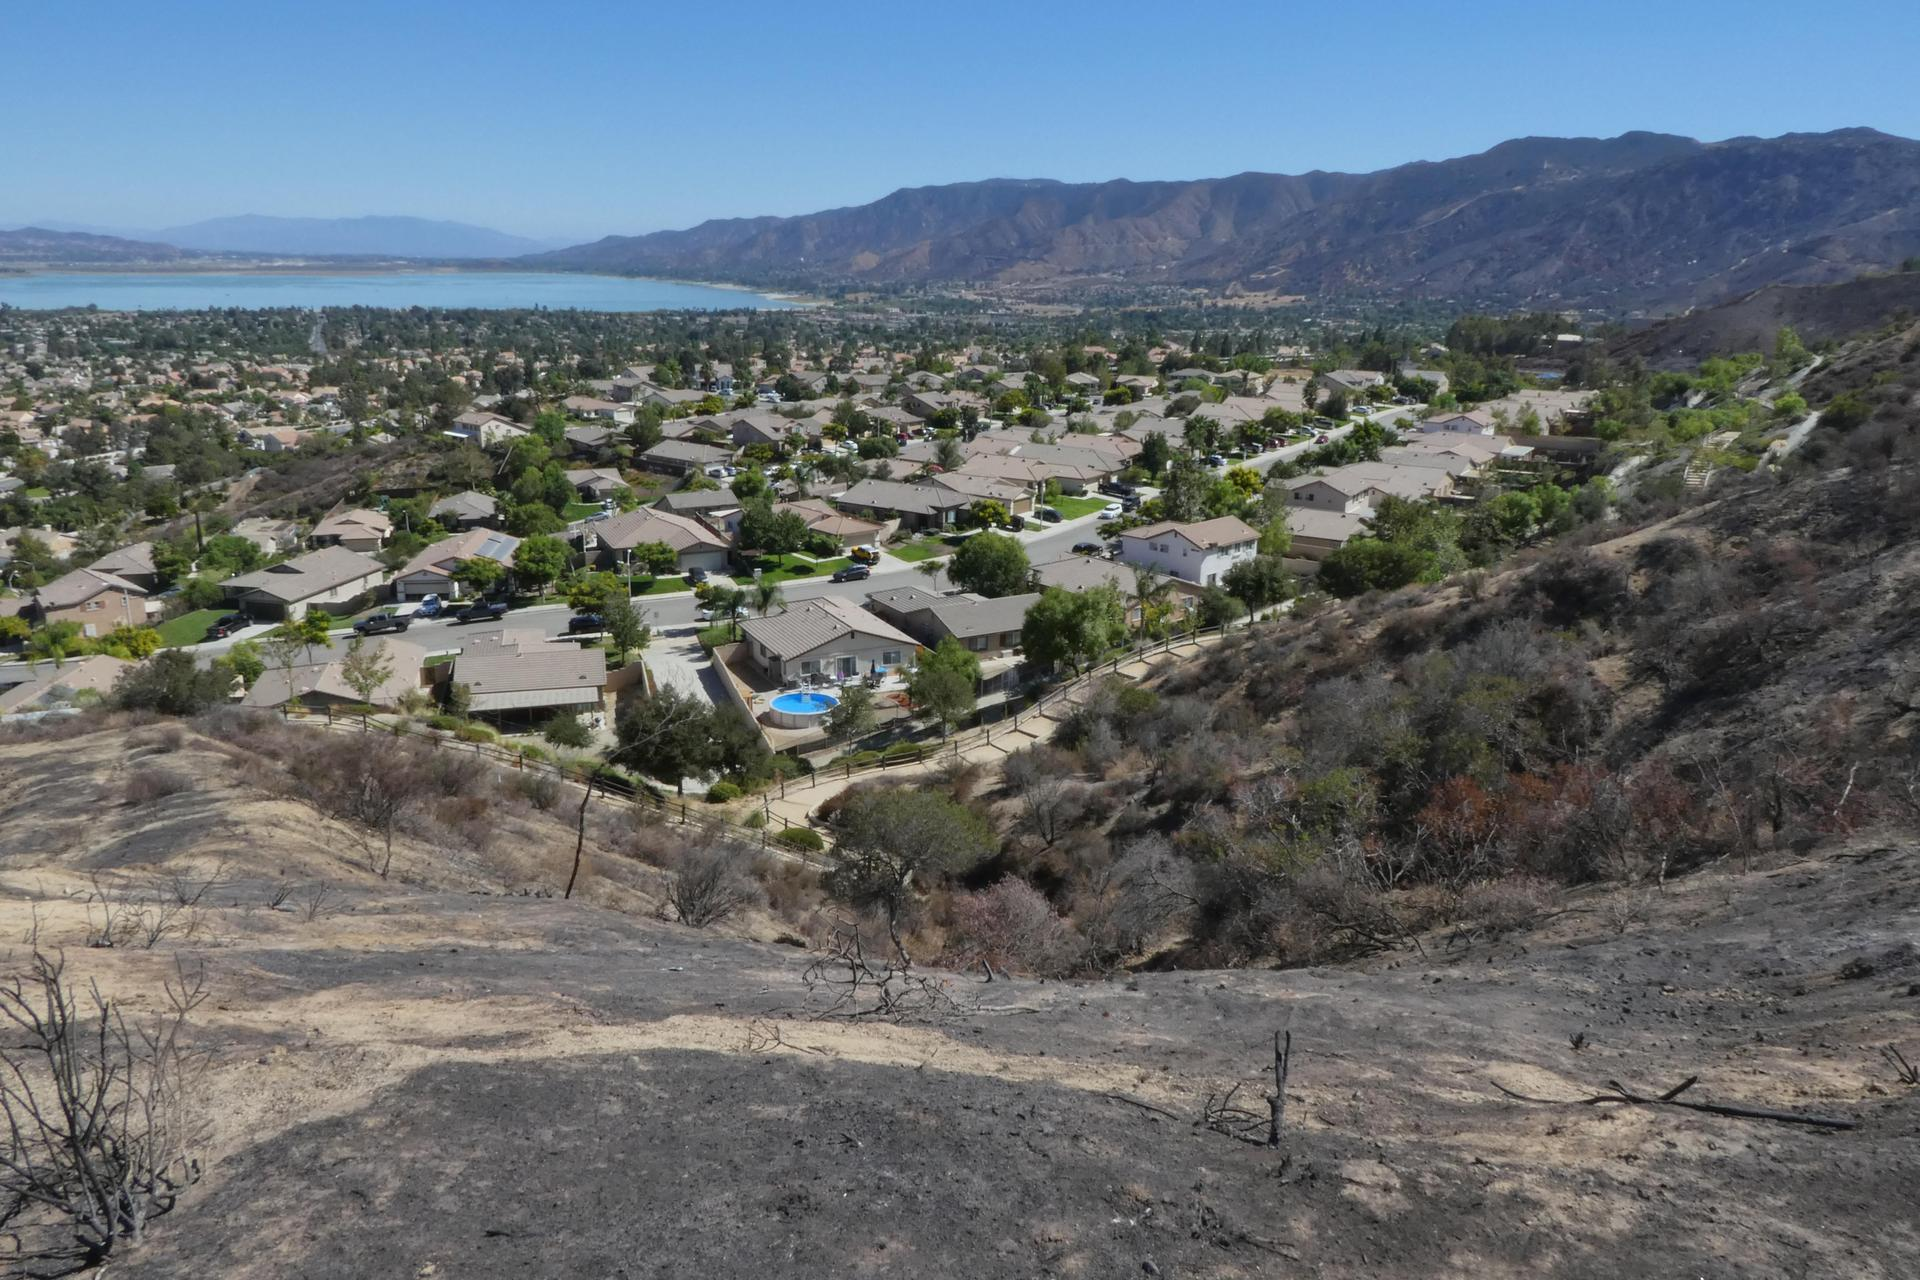 Burn scarred hillsides above homes are vulnerable to debris flow this wet season.